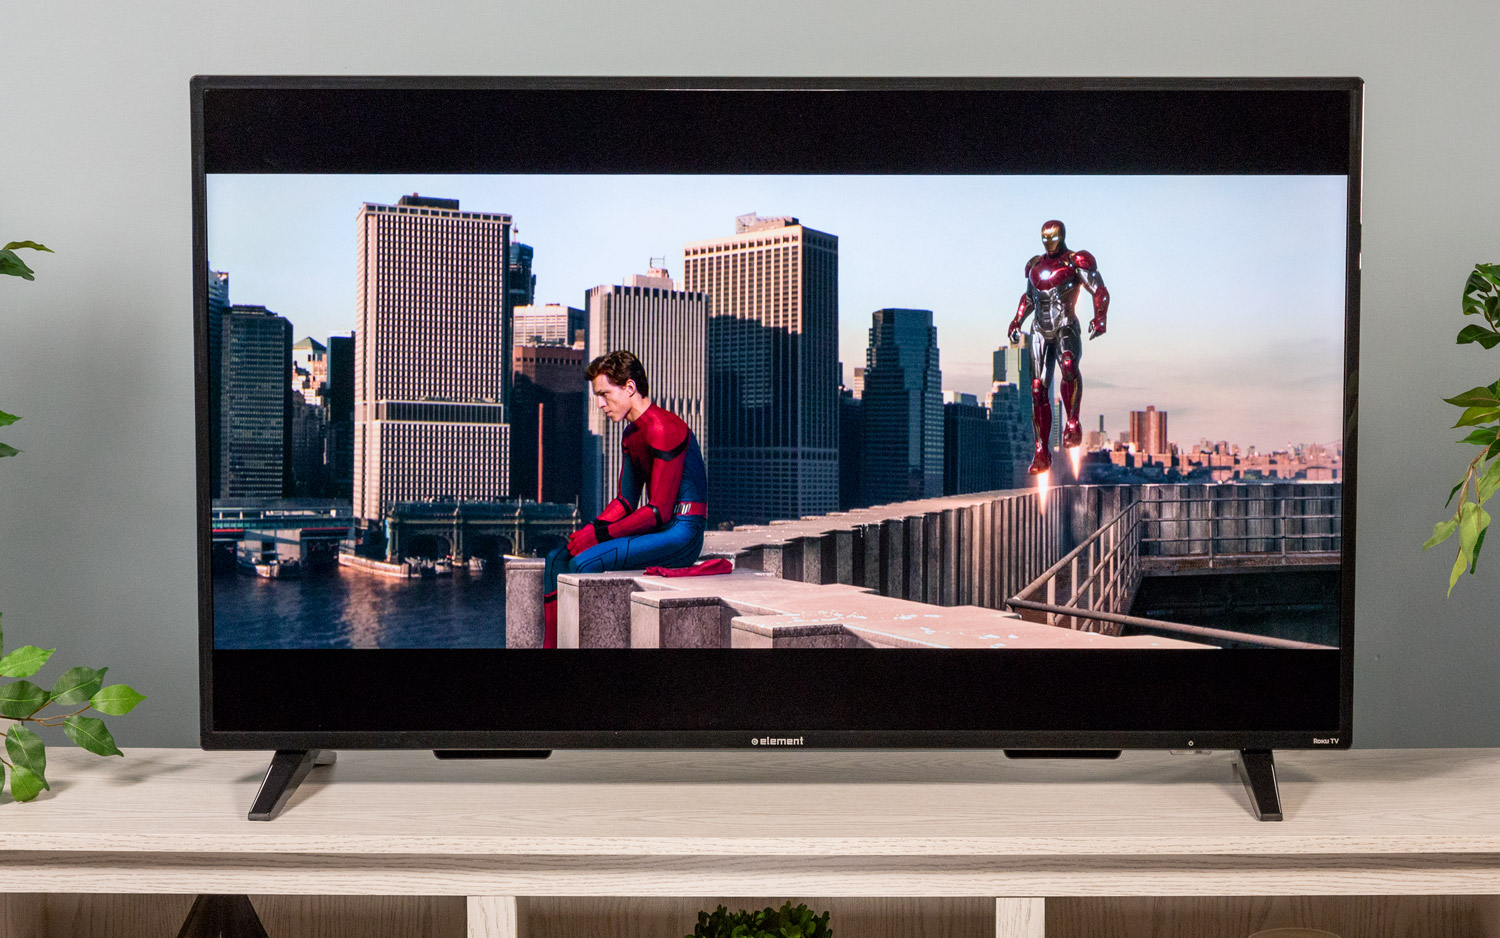 Element 55-inch Roku TV Review - Full Review and Benchmarks